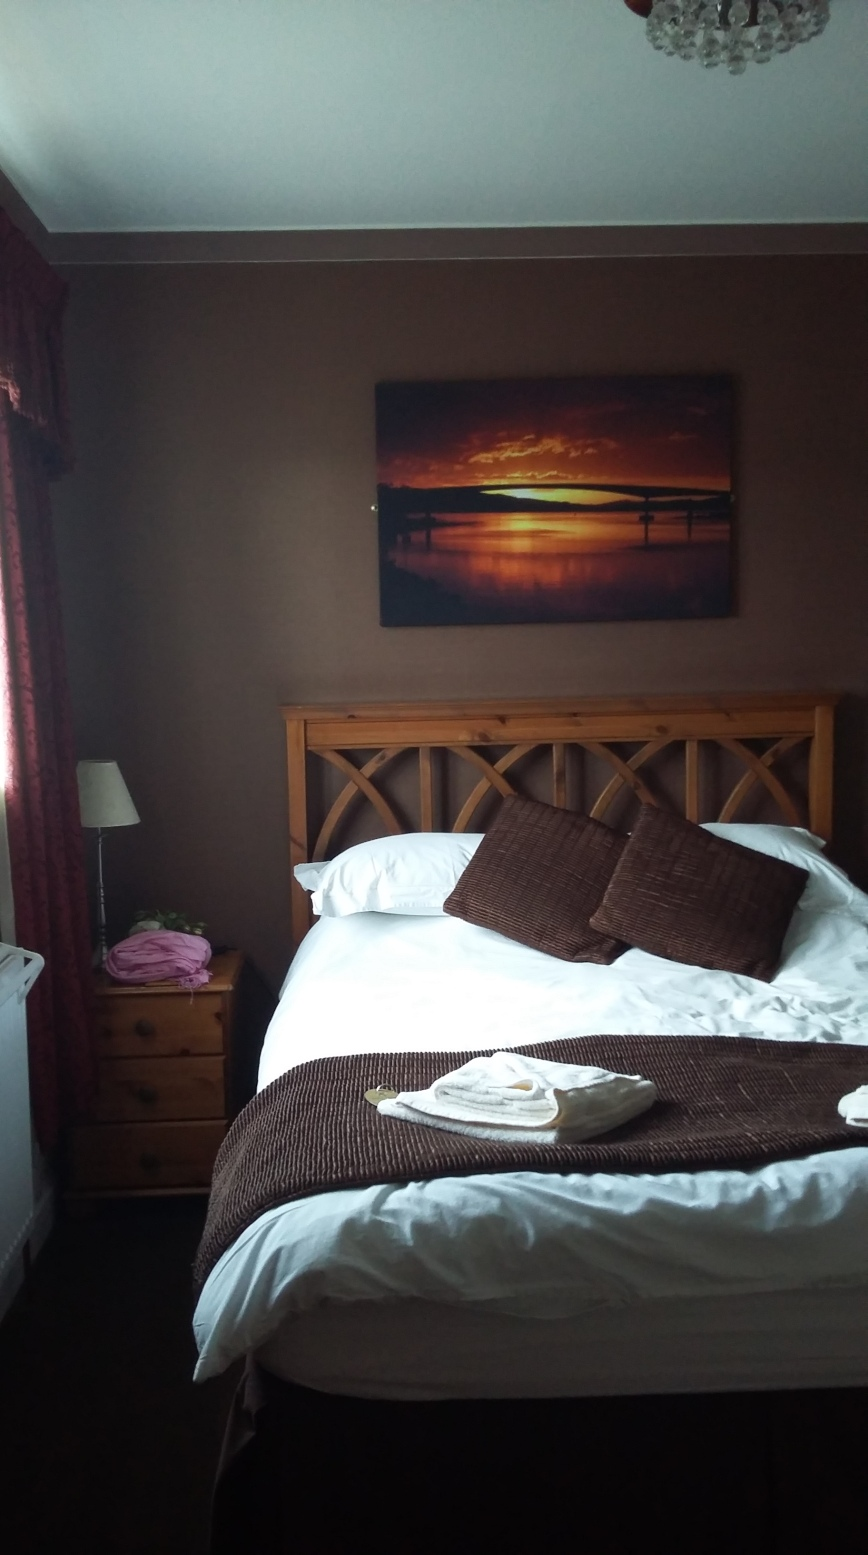 White Heather Hotel, Kyleakin, Skye - Emma's Picture Postcards